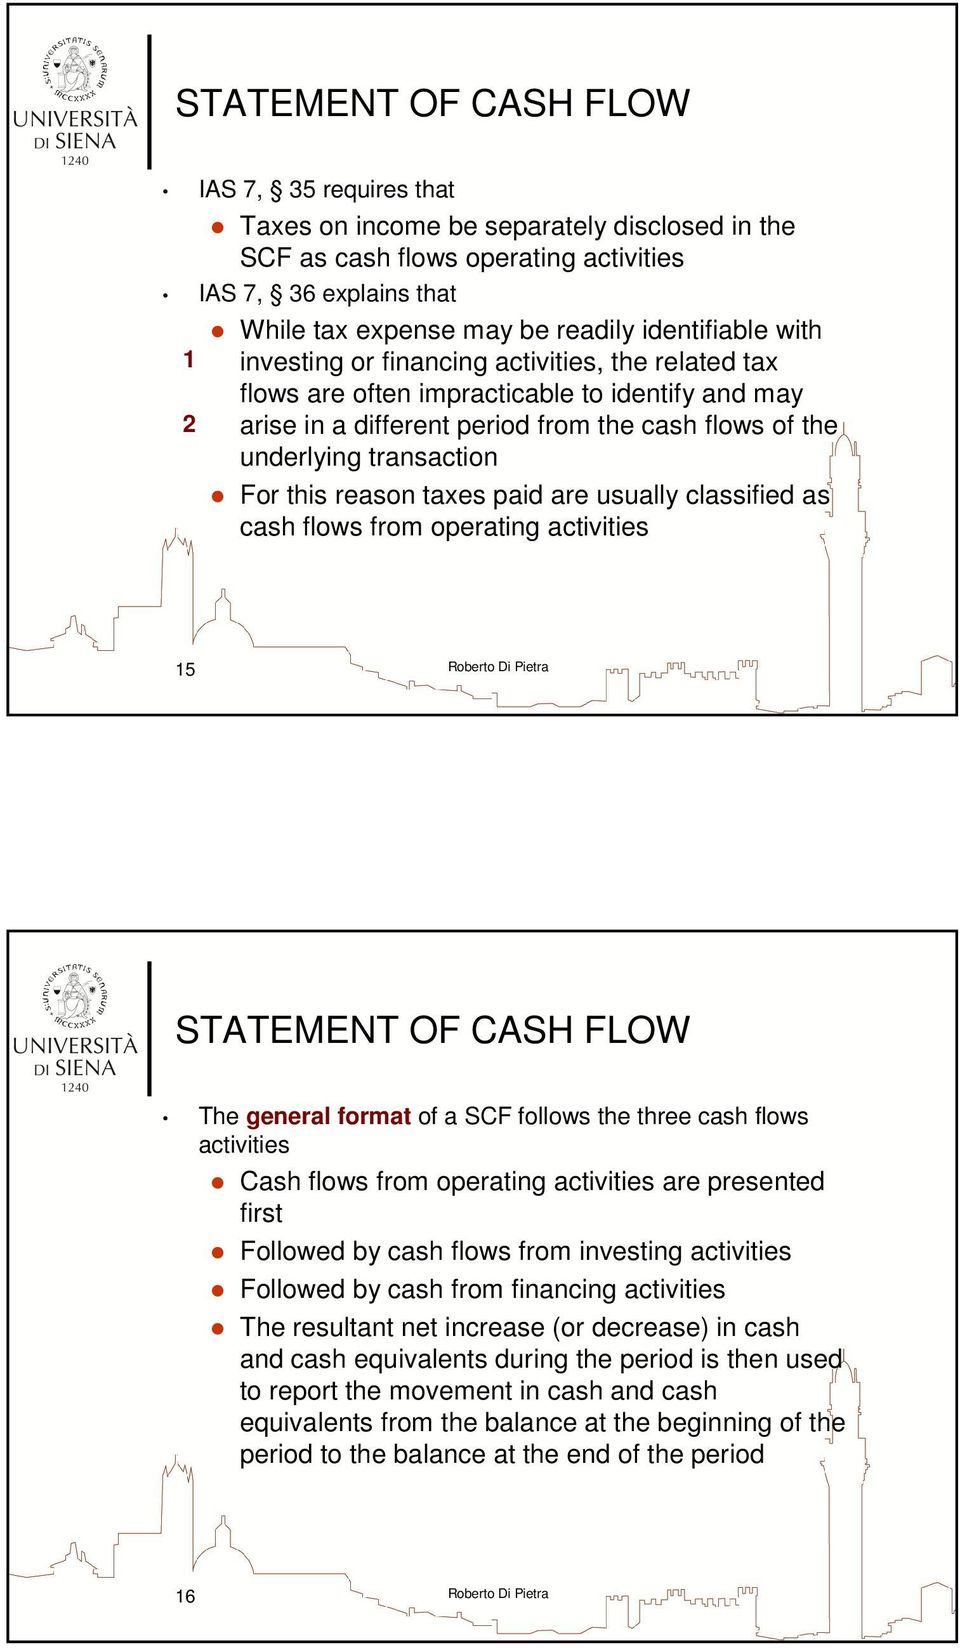 usually classified as cash flows from operating activities 15 The general format of a SCF follows the three cash flows activities Cash flows from operating activities are presented first Followed by